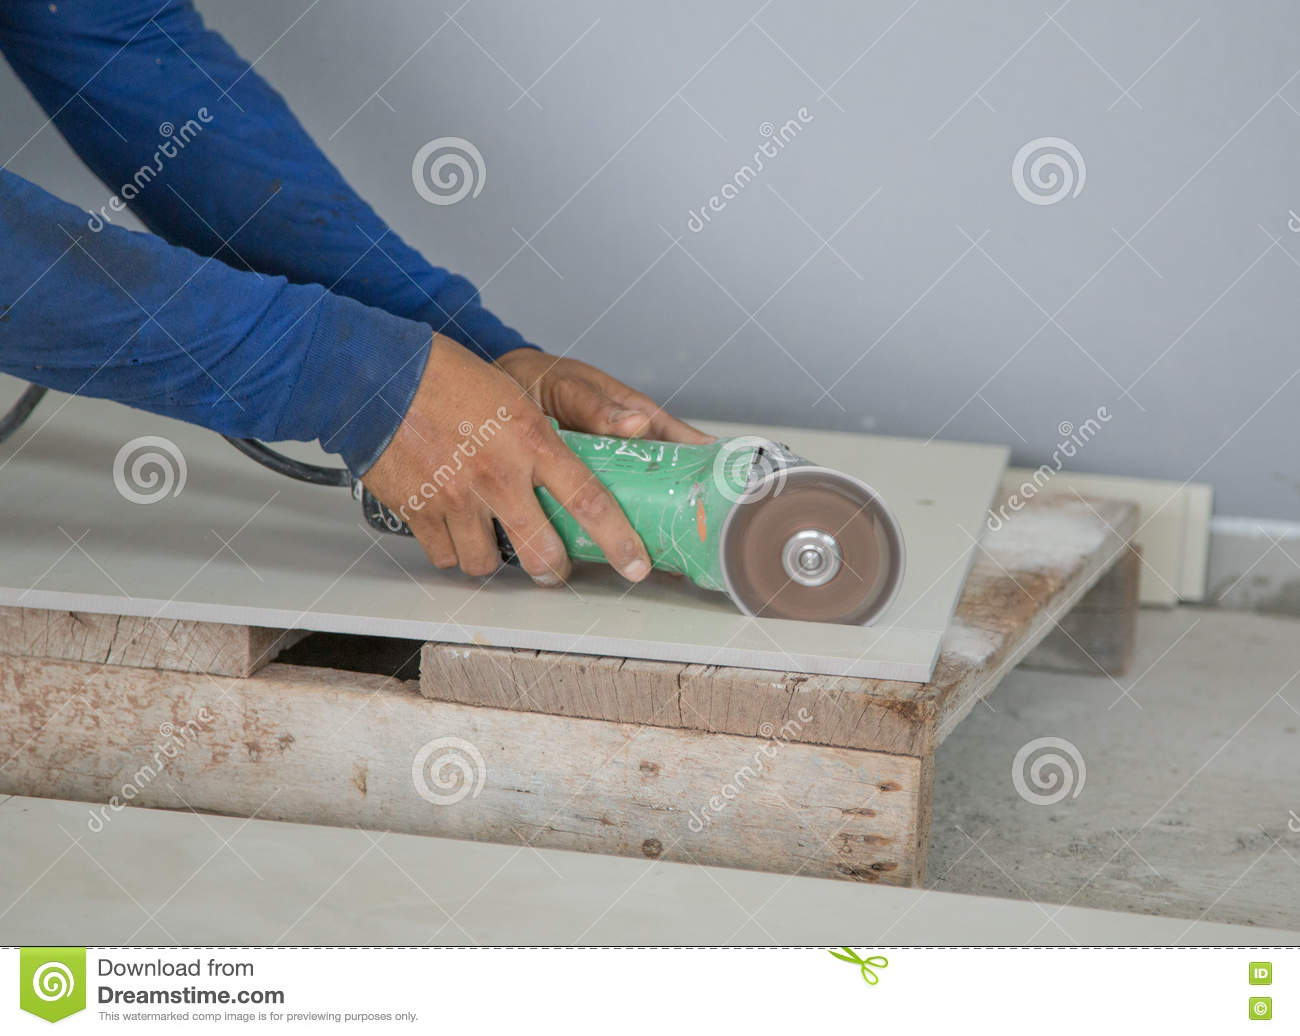 worker cutting a tile using an angle grinder stock image image of cutting hand 71992385